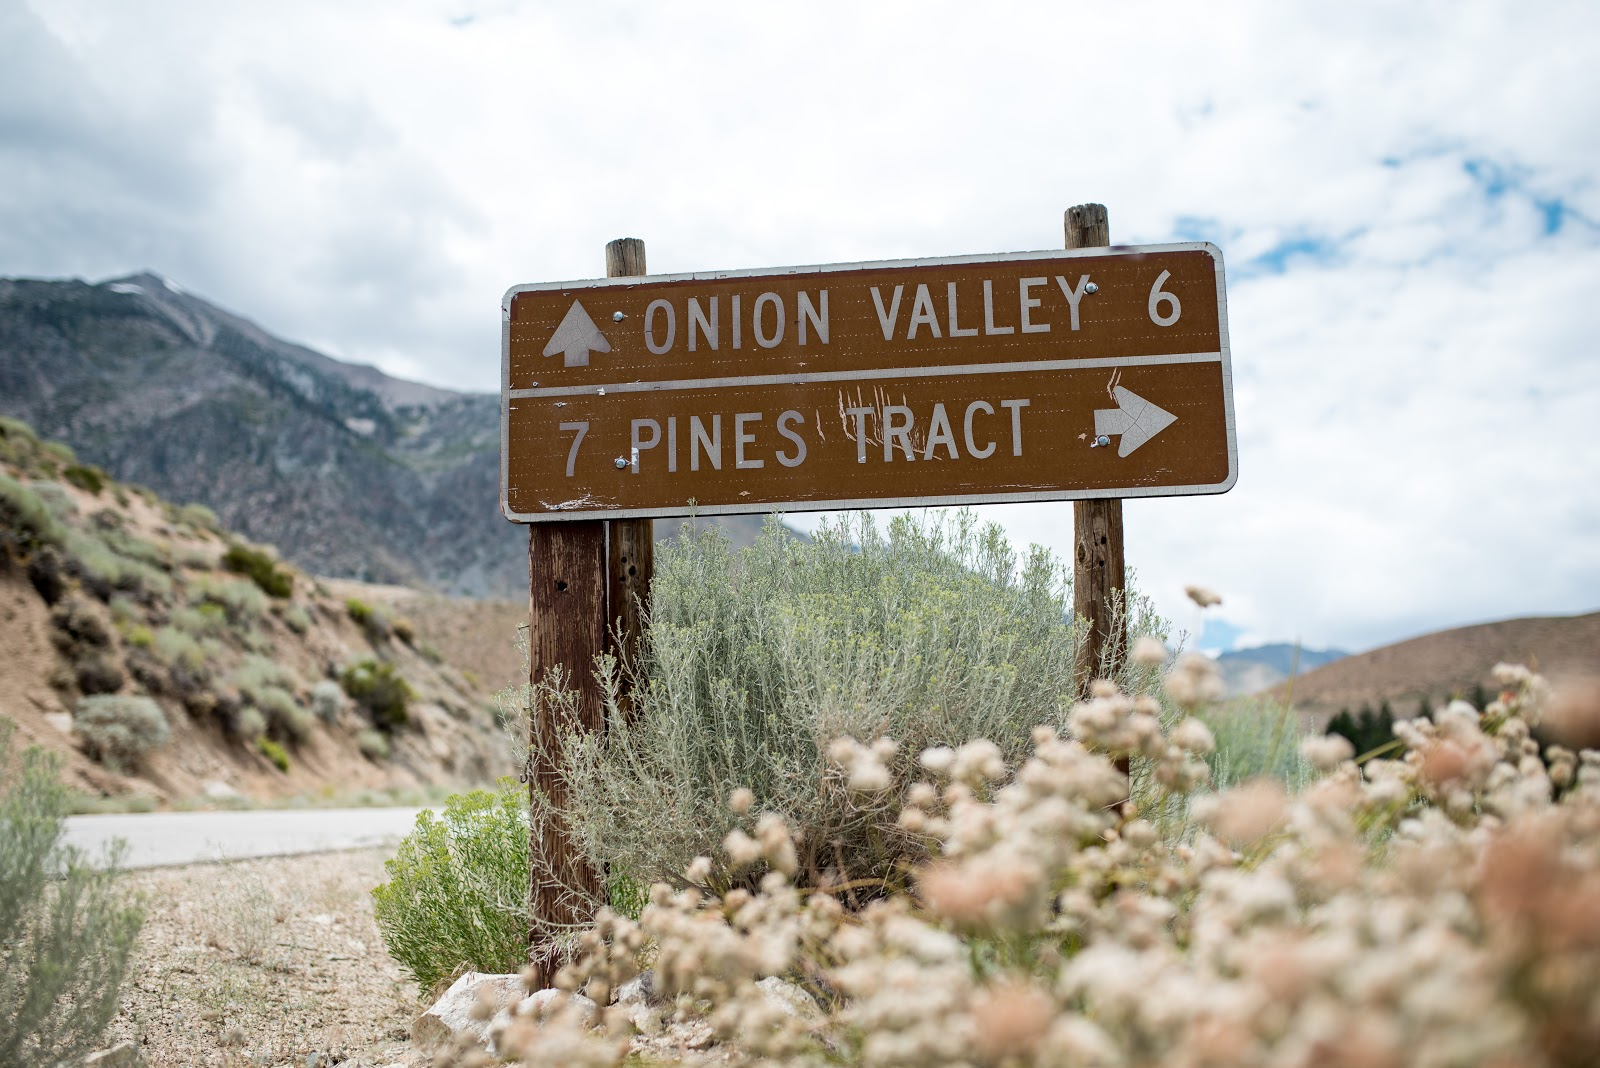 Cycling near the top of Onion Valley Road, Owens Valley CA